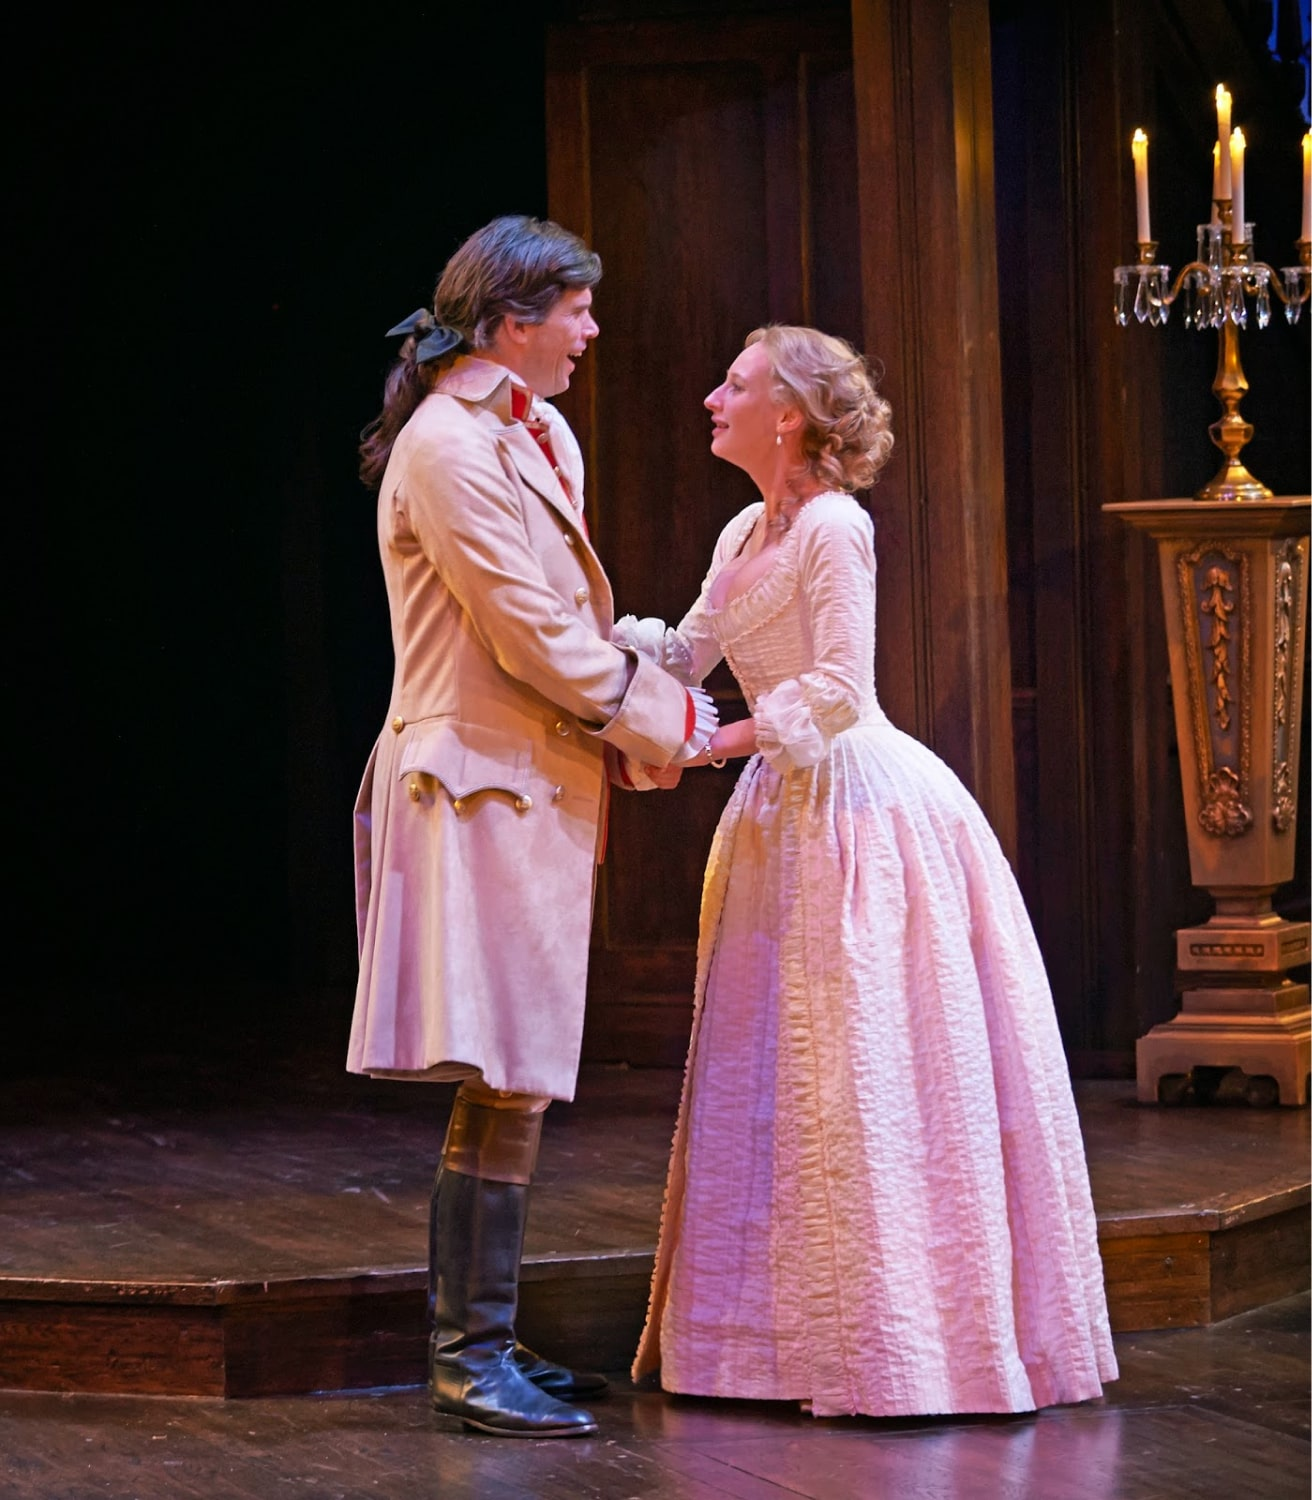 Man in boots and long coat holds hands with woman in white gown.